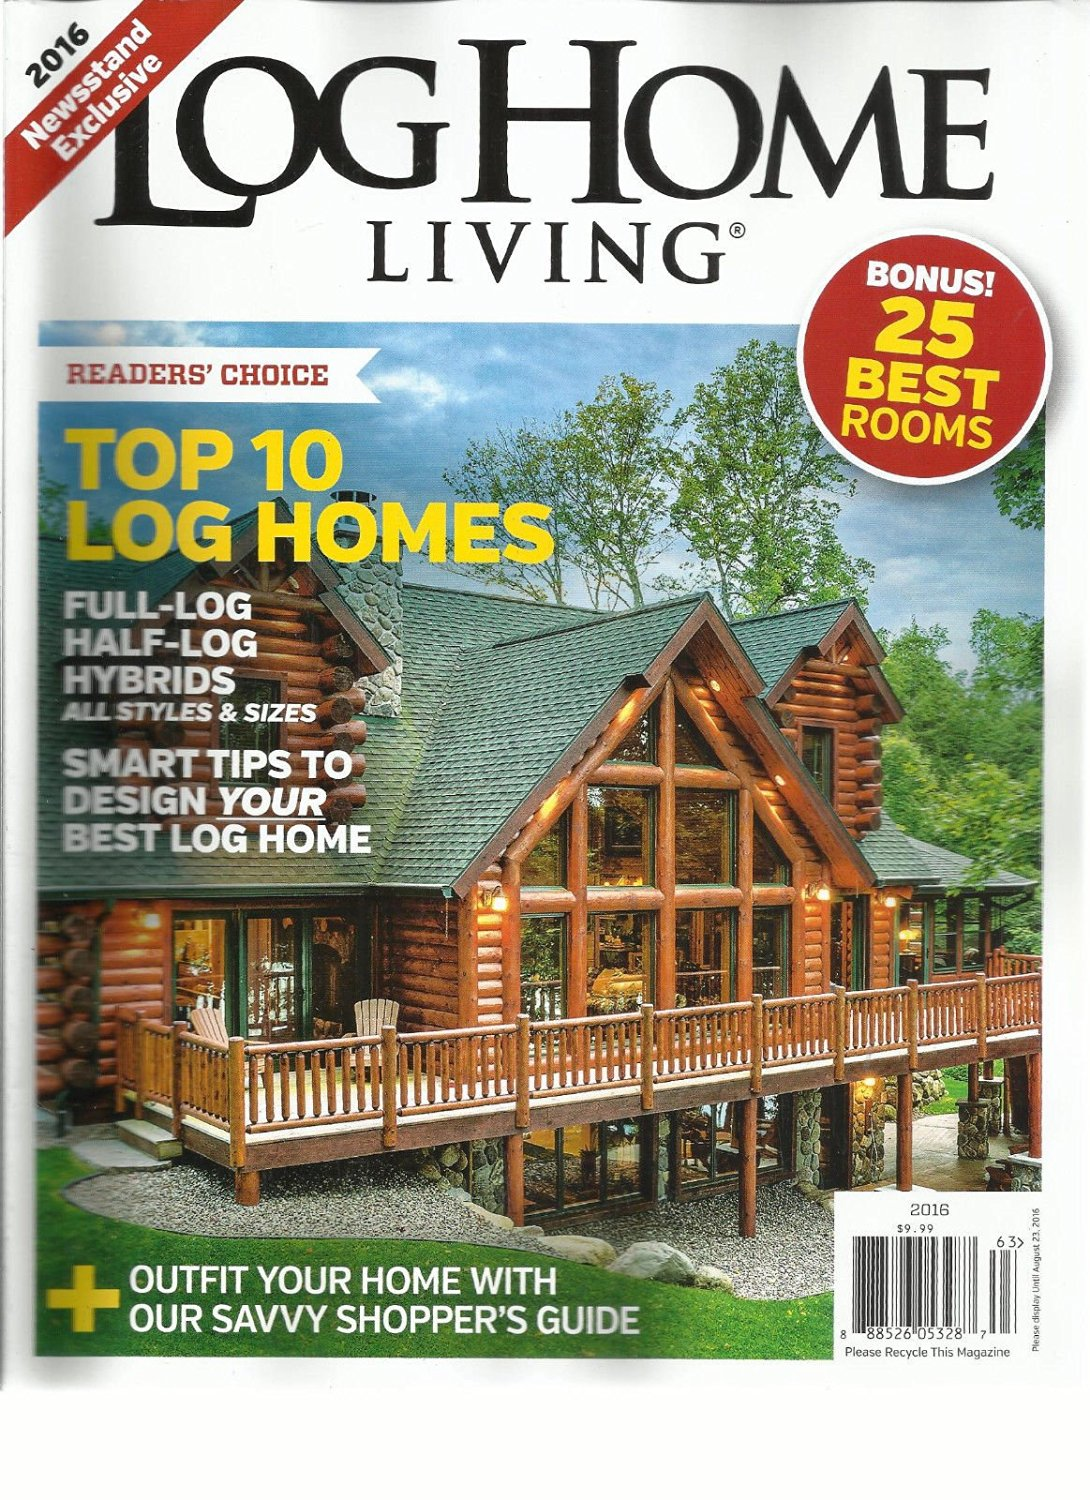 Buy LOG HOMES LIVING, BEST LOG HOMES, 2016 ( BONUS! 25 BEST ROOMS ) TOP 10 LOG  HOMES In Cheap Price On M.alibaba.com